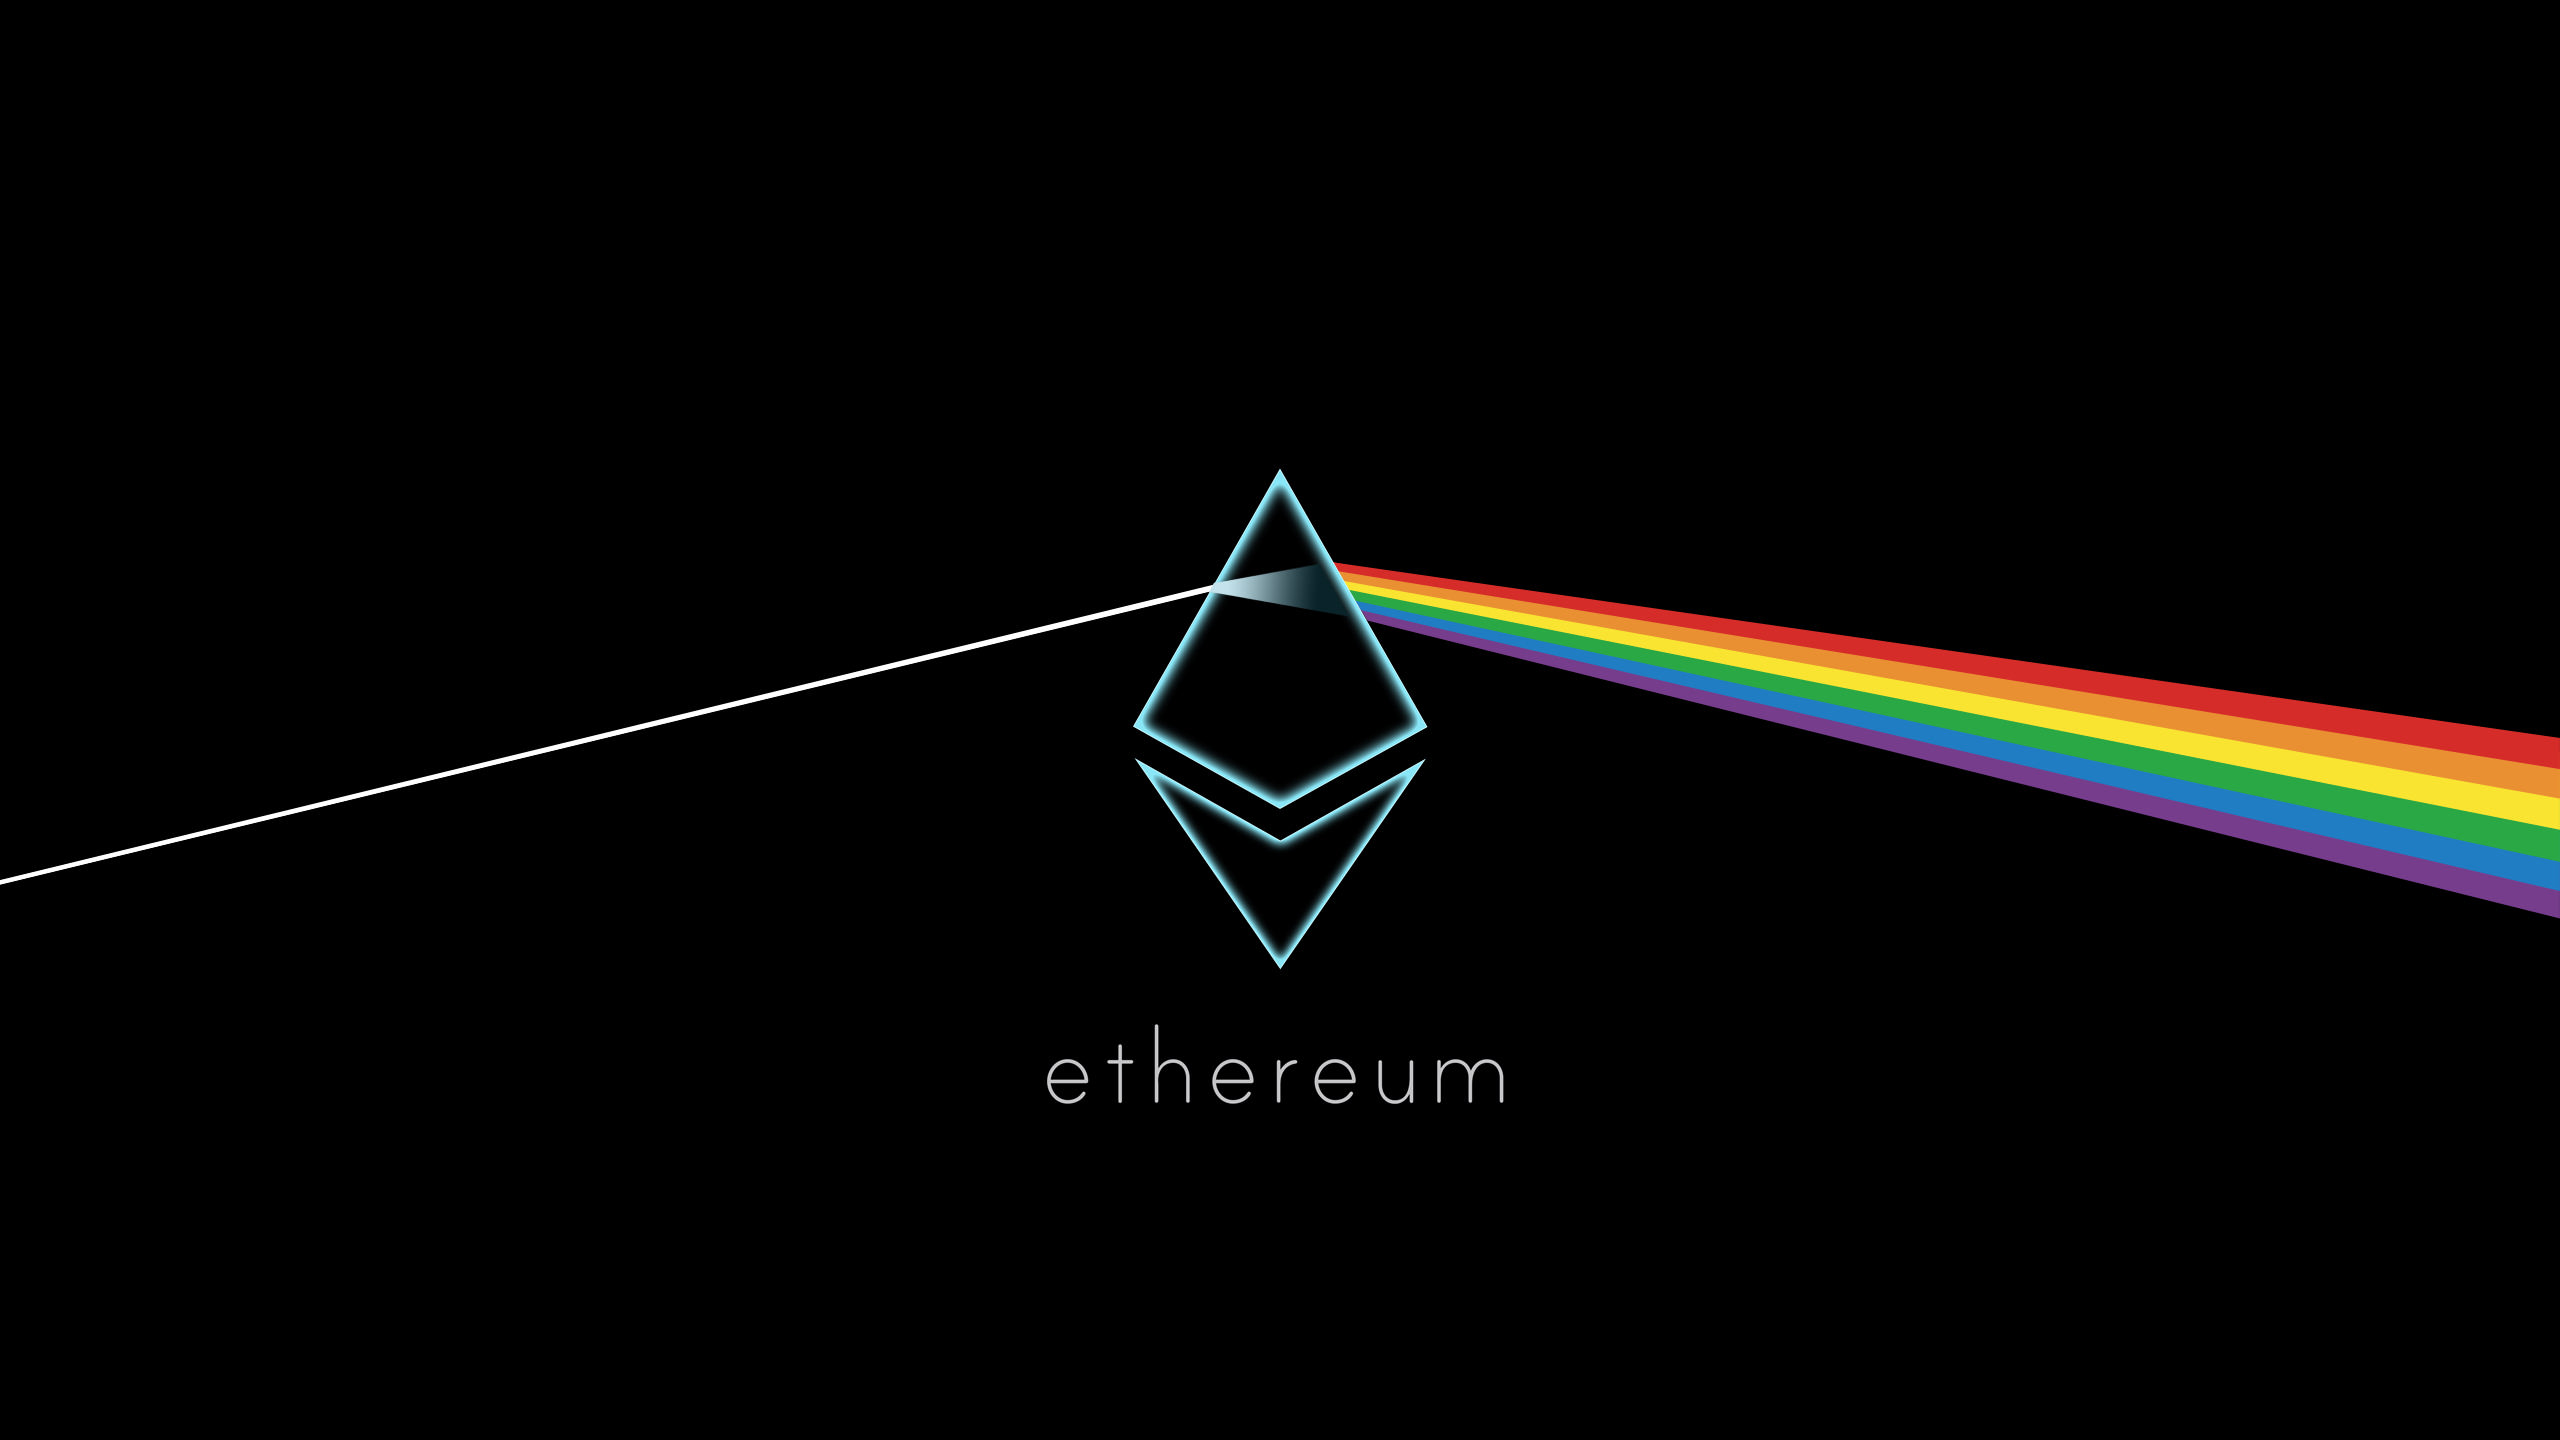 Ethereum background wallpaper image in HD ianjmeikle submitted 2560x1440